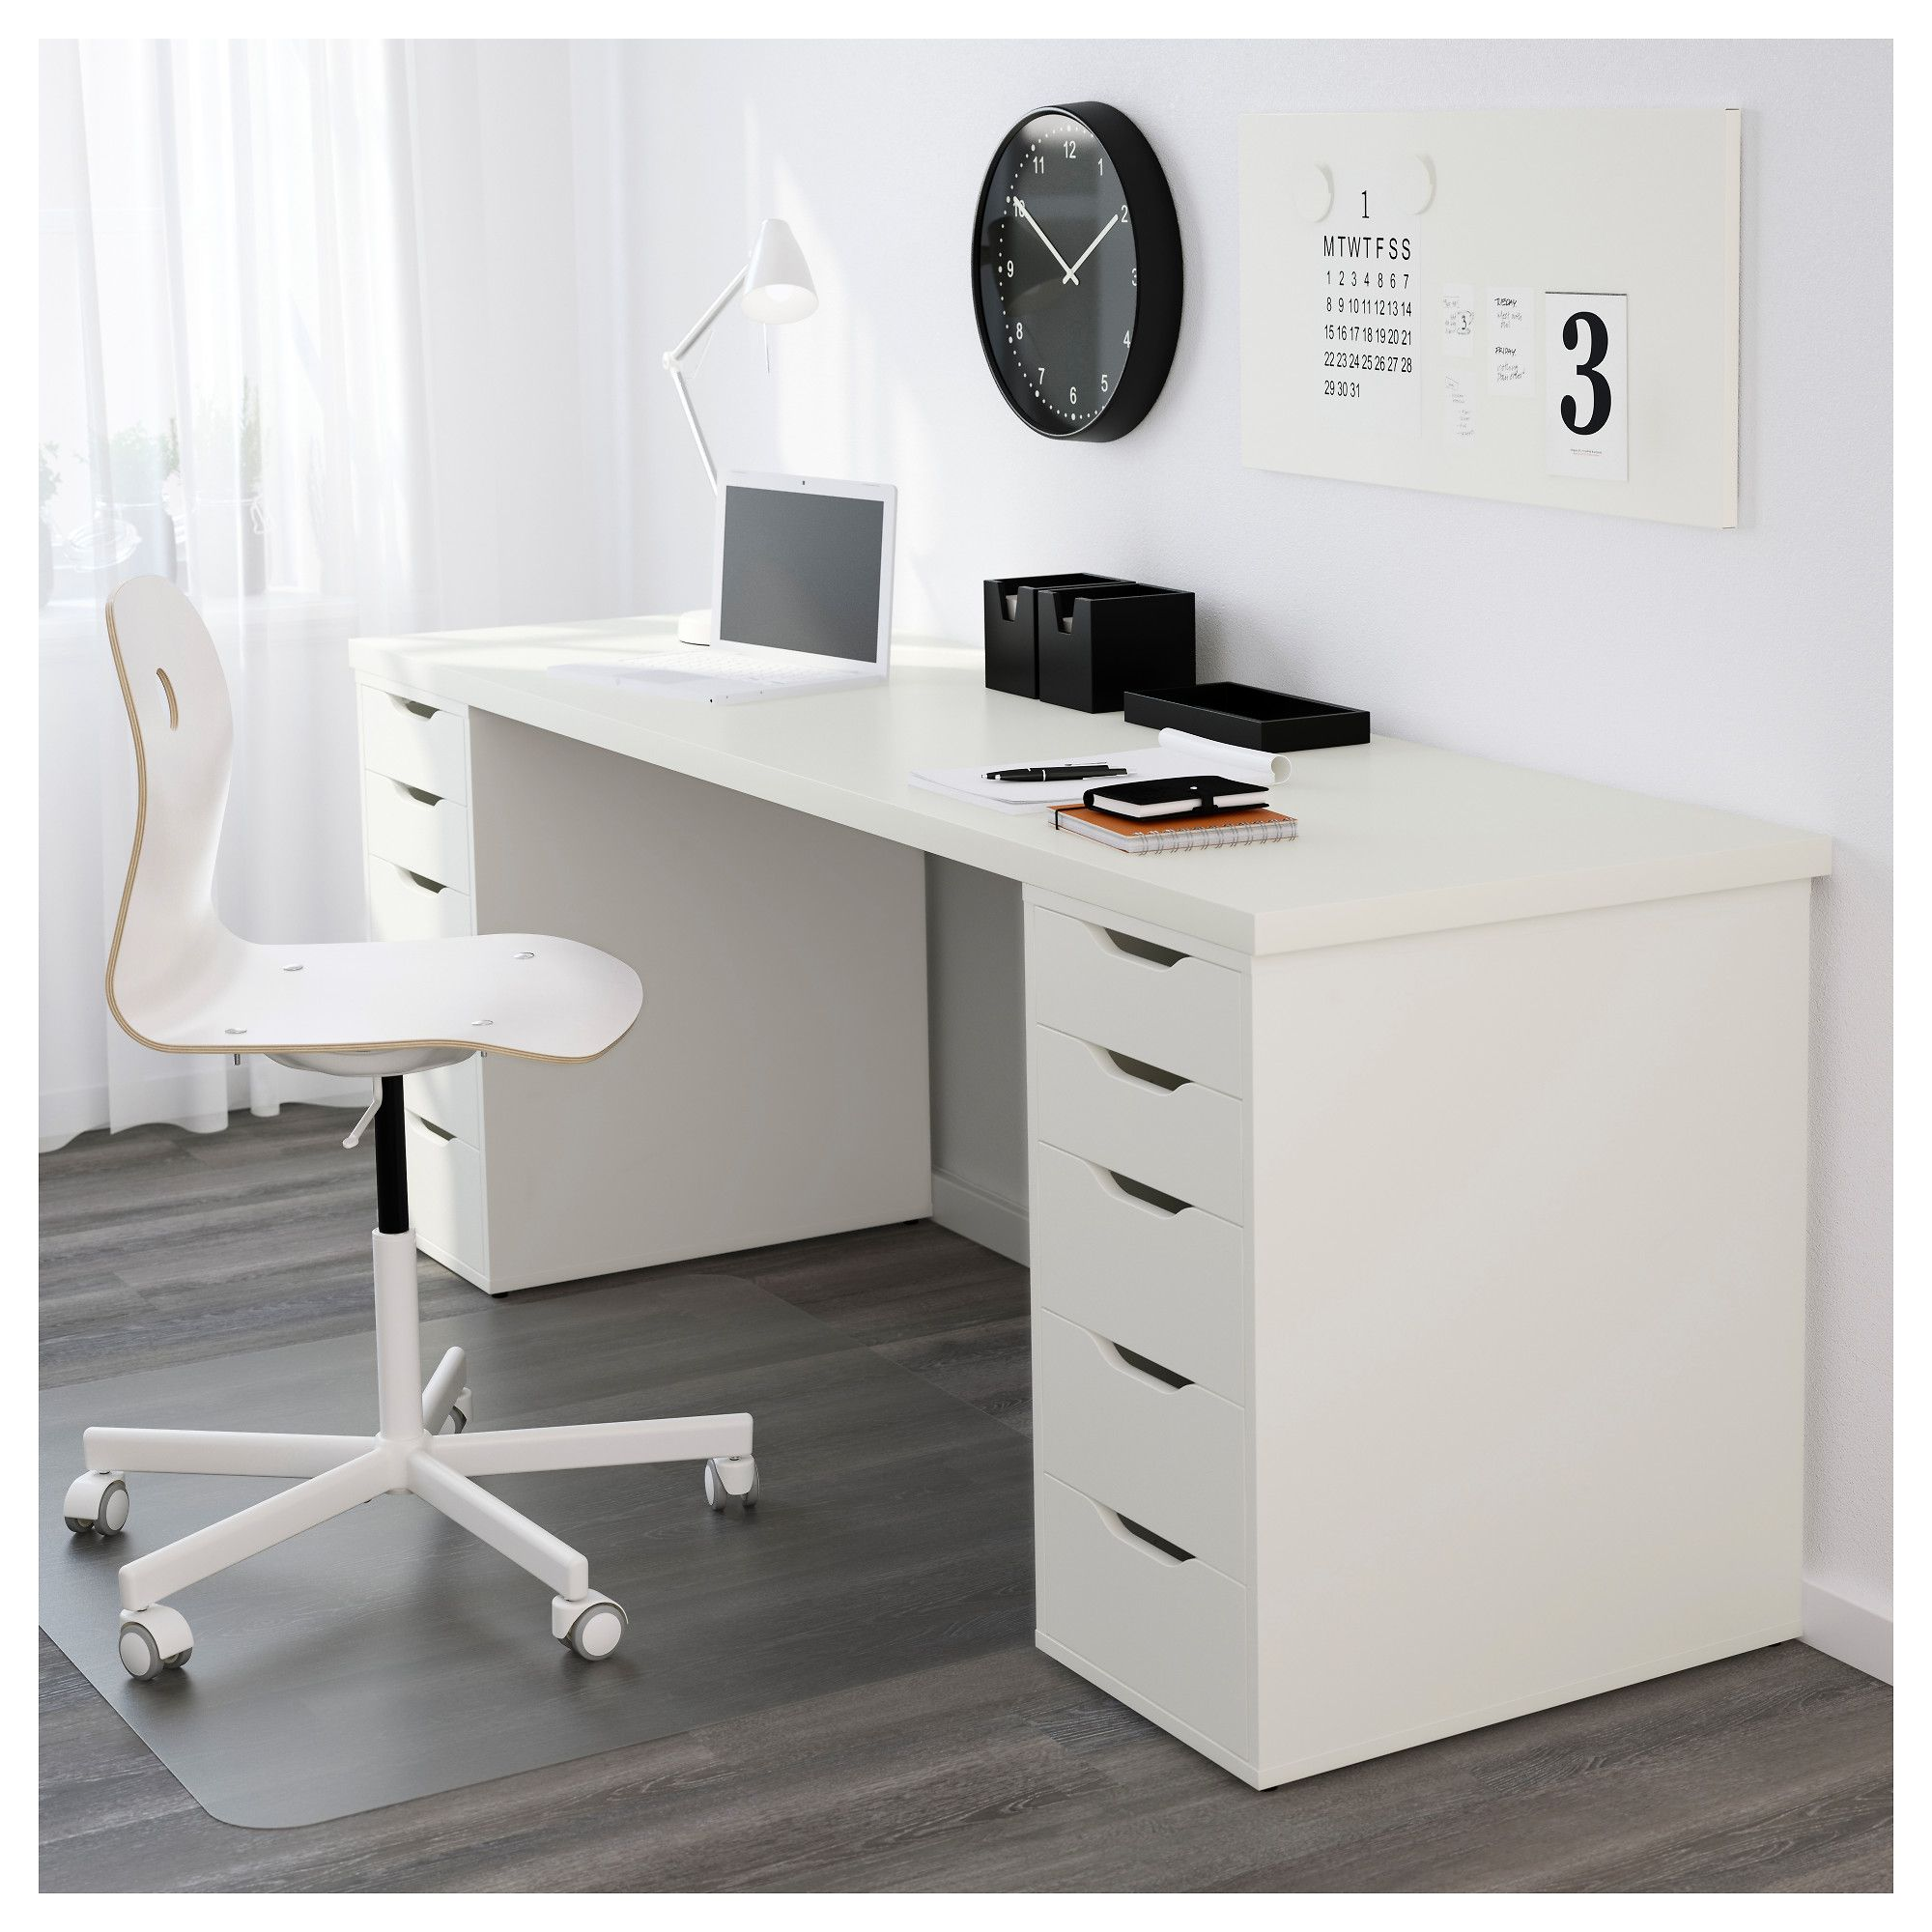 Gentil IKEA   LINNMON, Table Top, White, , A Long Table Top Makes It Easy To  Create A Work Space For Two.Pre Drilled Leg Holes For Easy Assembly.